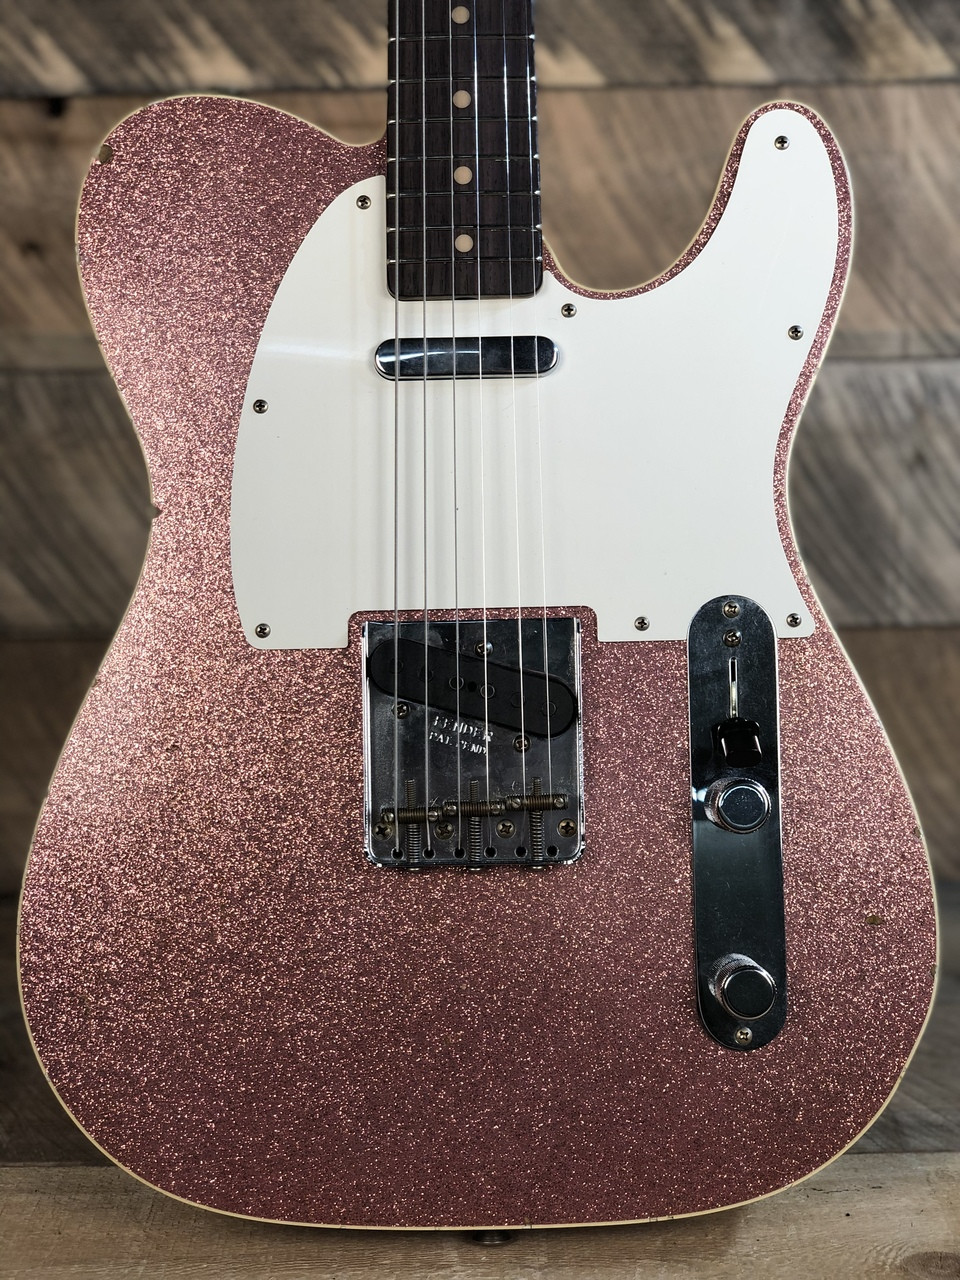 Fender Custom Shop Vintage Custom Journeyman Relic '59 Telecaster Rosewood  Fingerboard Faded/Aged Champagne Sparkle CZ539922 - The Guitar Store